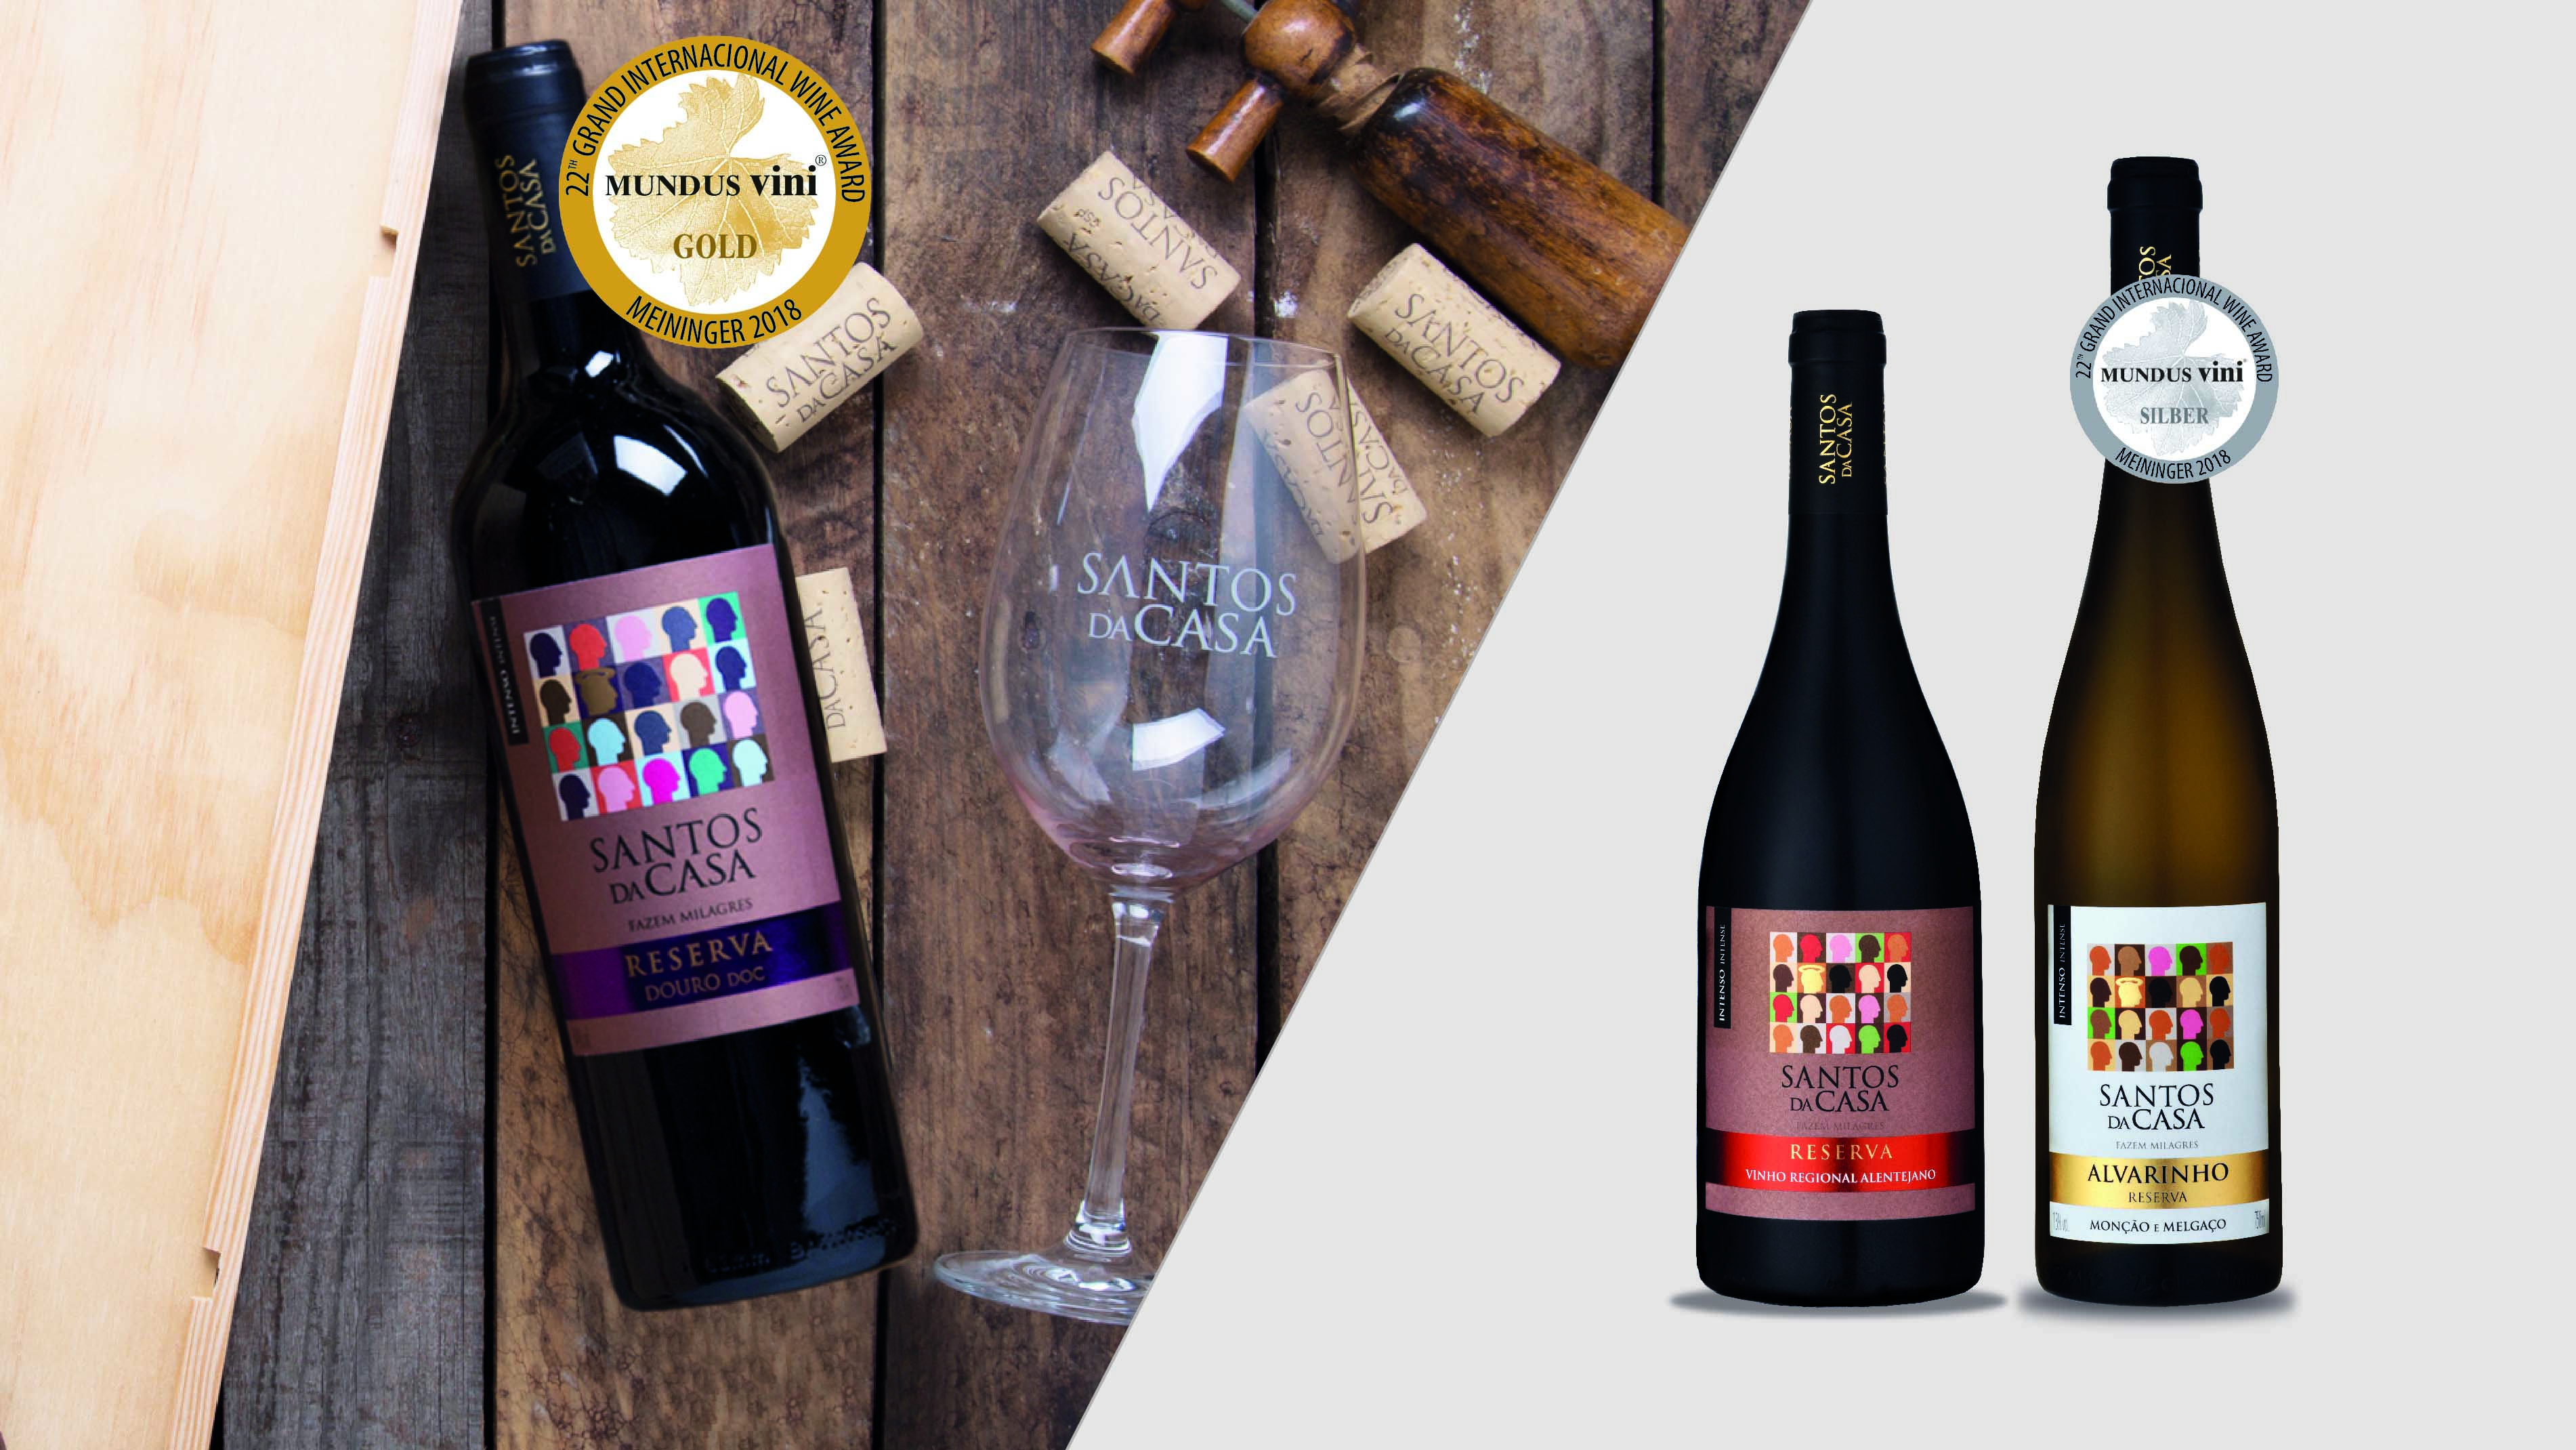 Gold in Mundus Vini contest